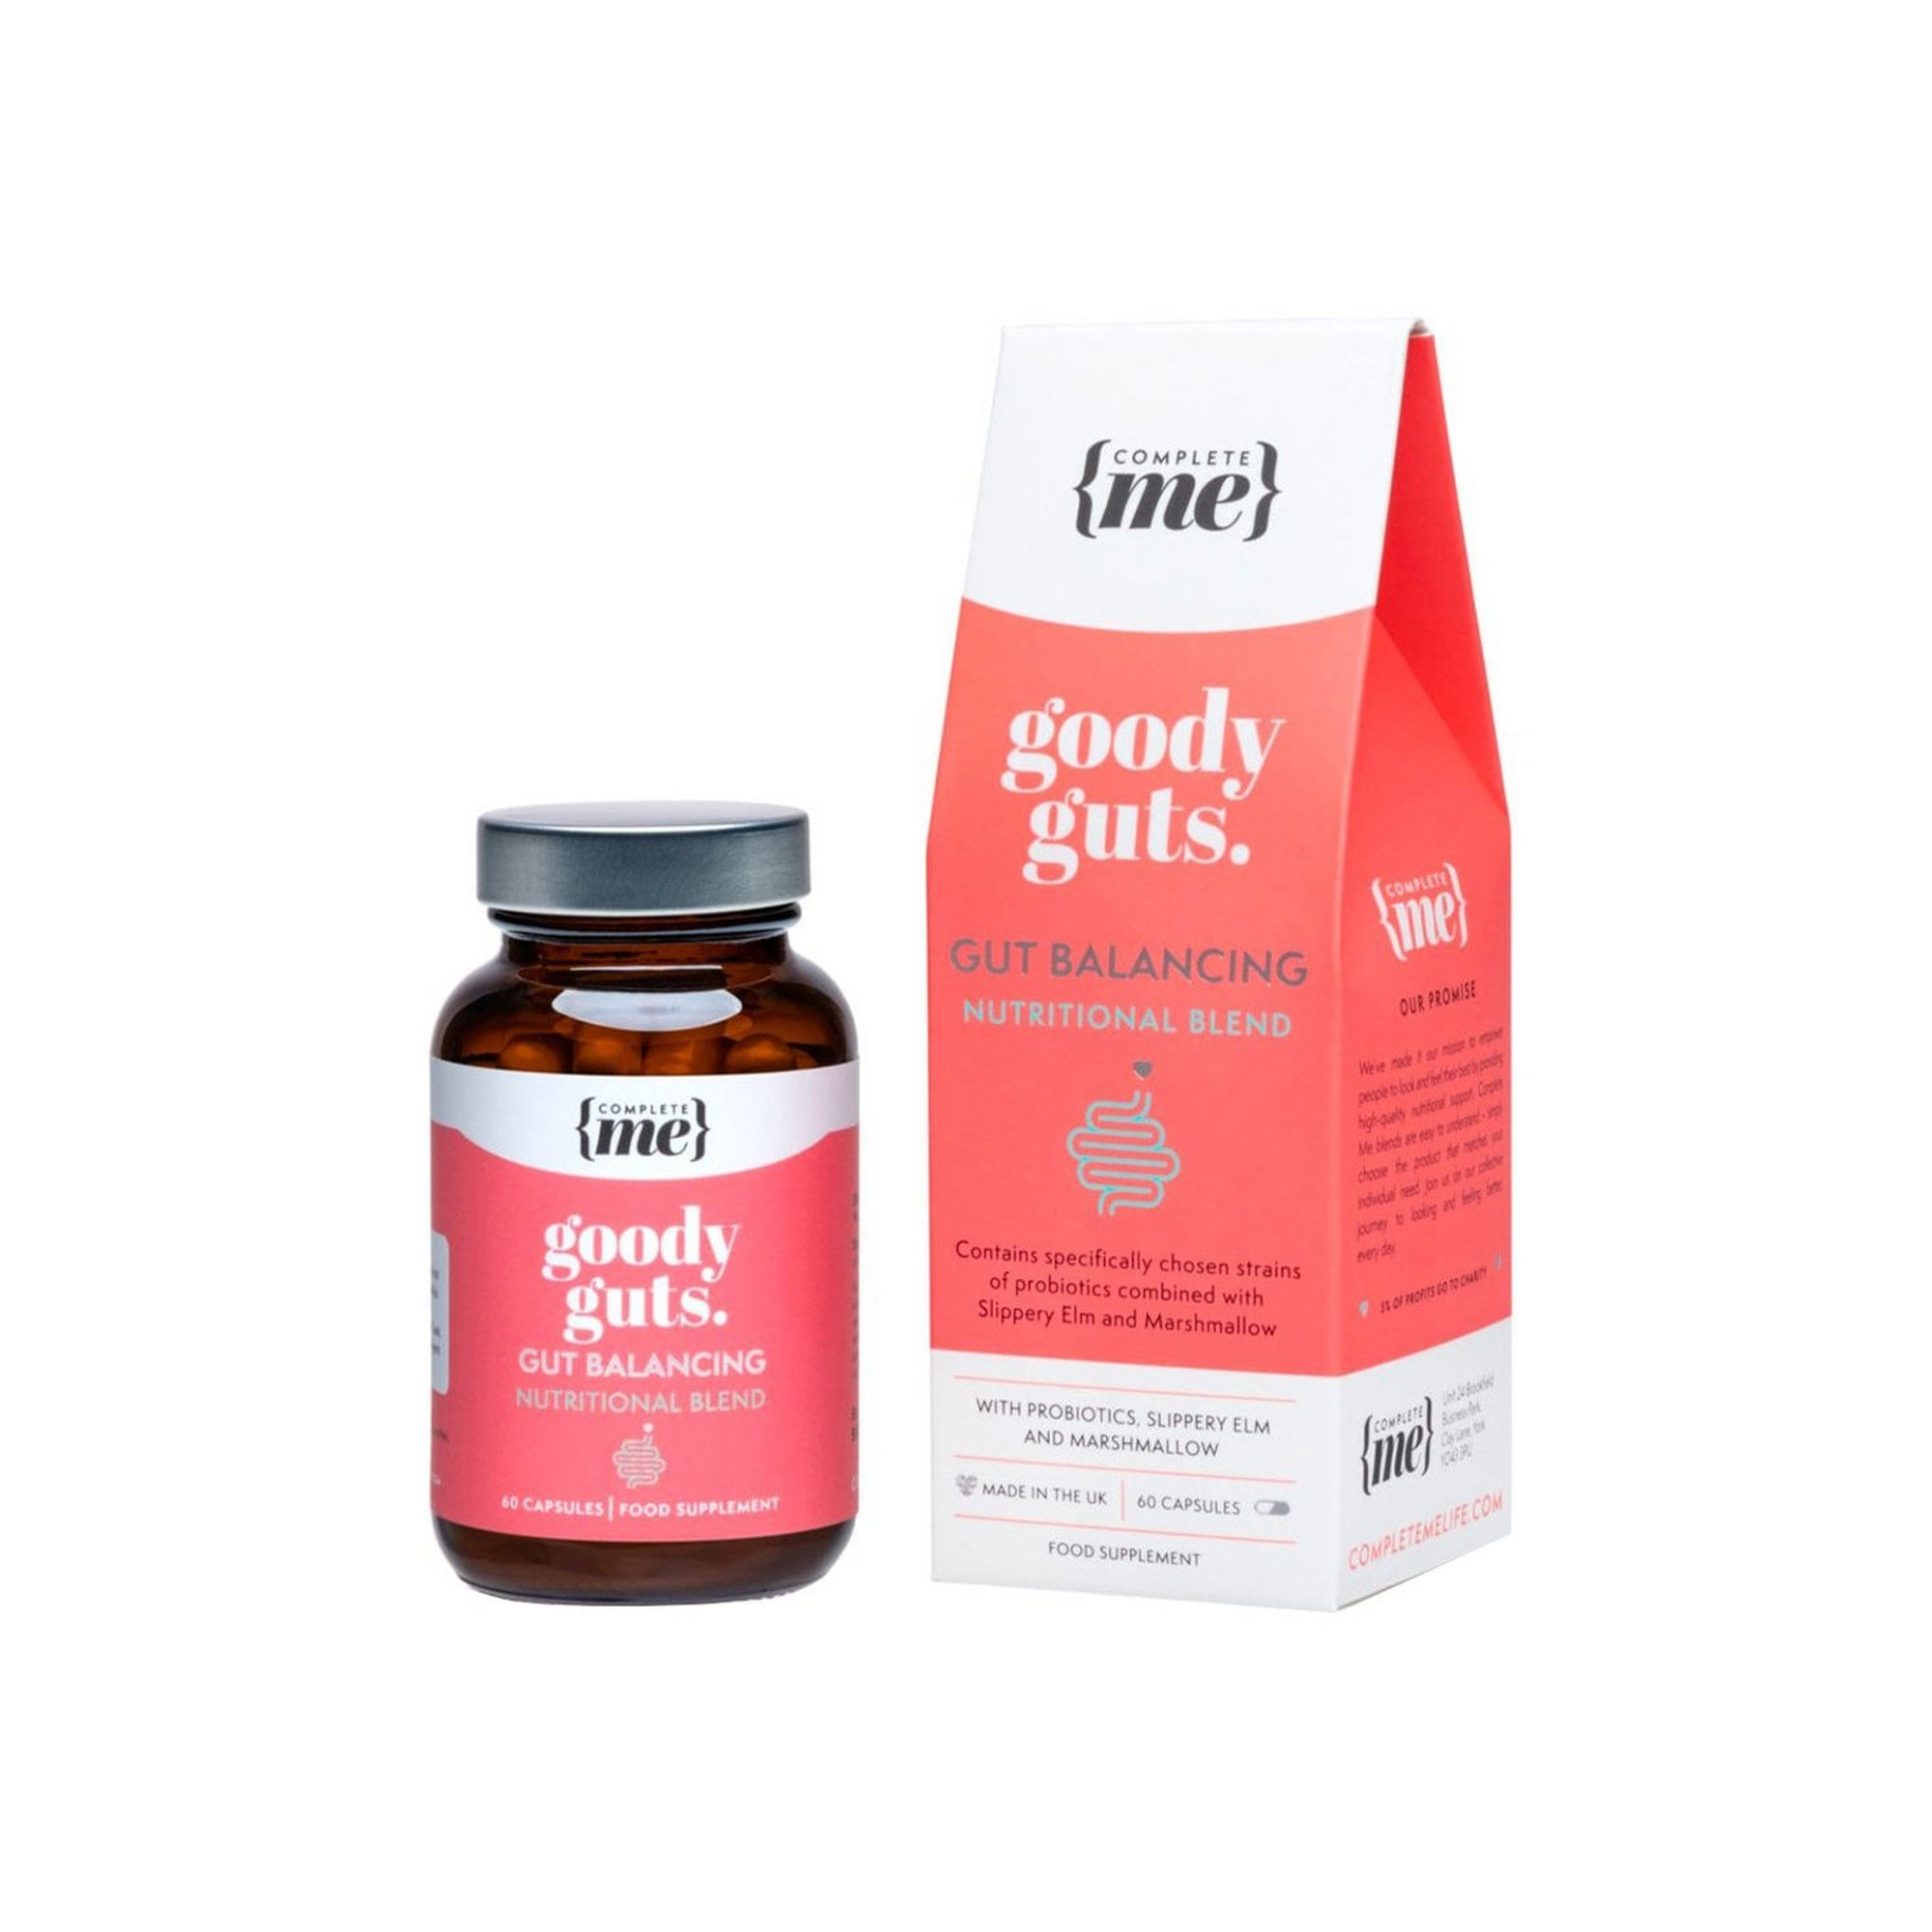 Image of Complete Me Goody Guts Gut Balancing Nutritional Blend Capsules